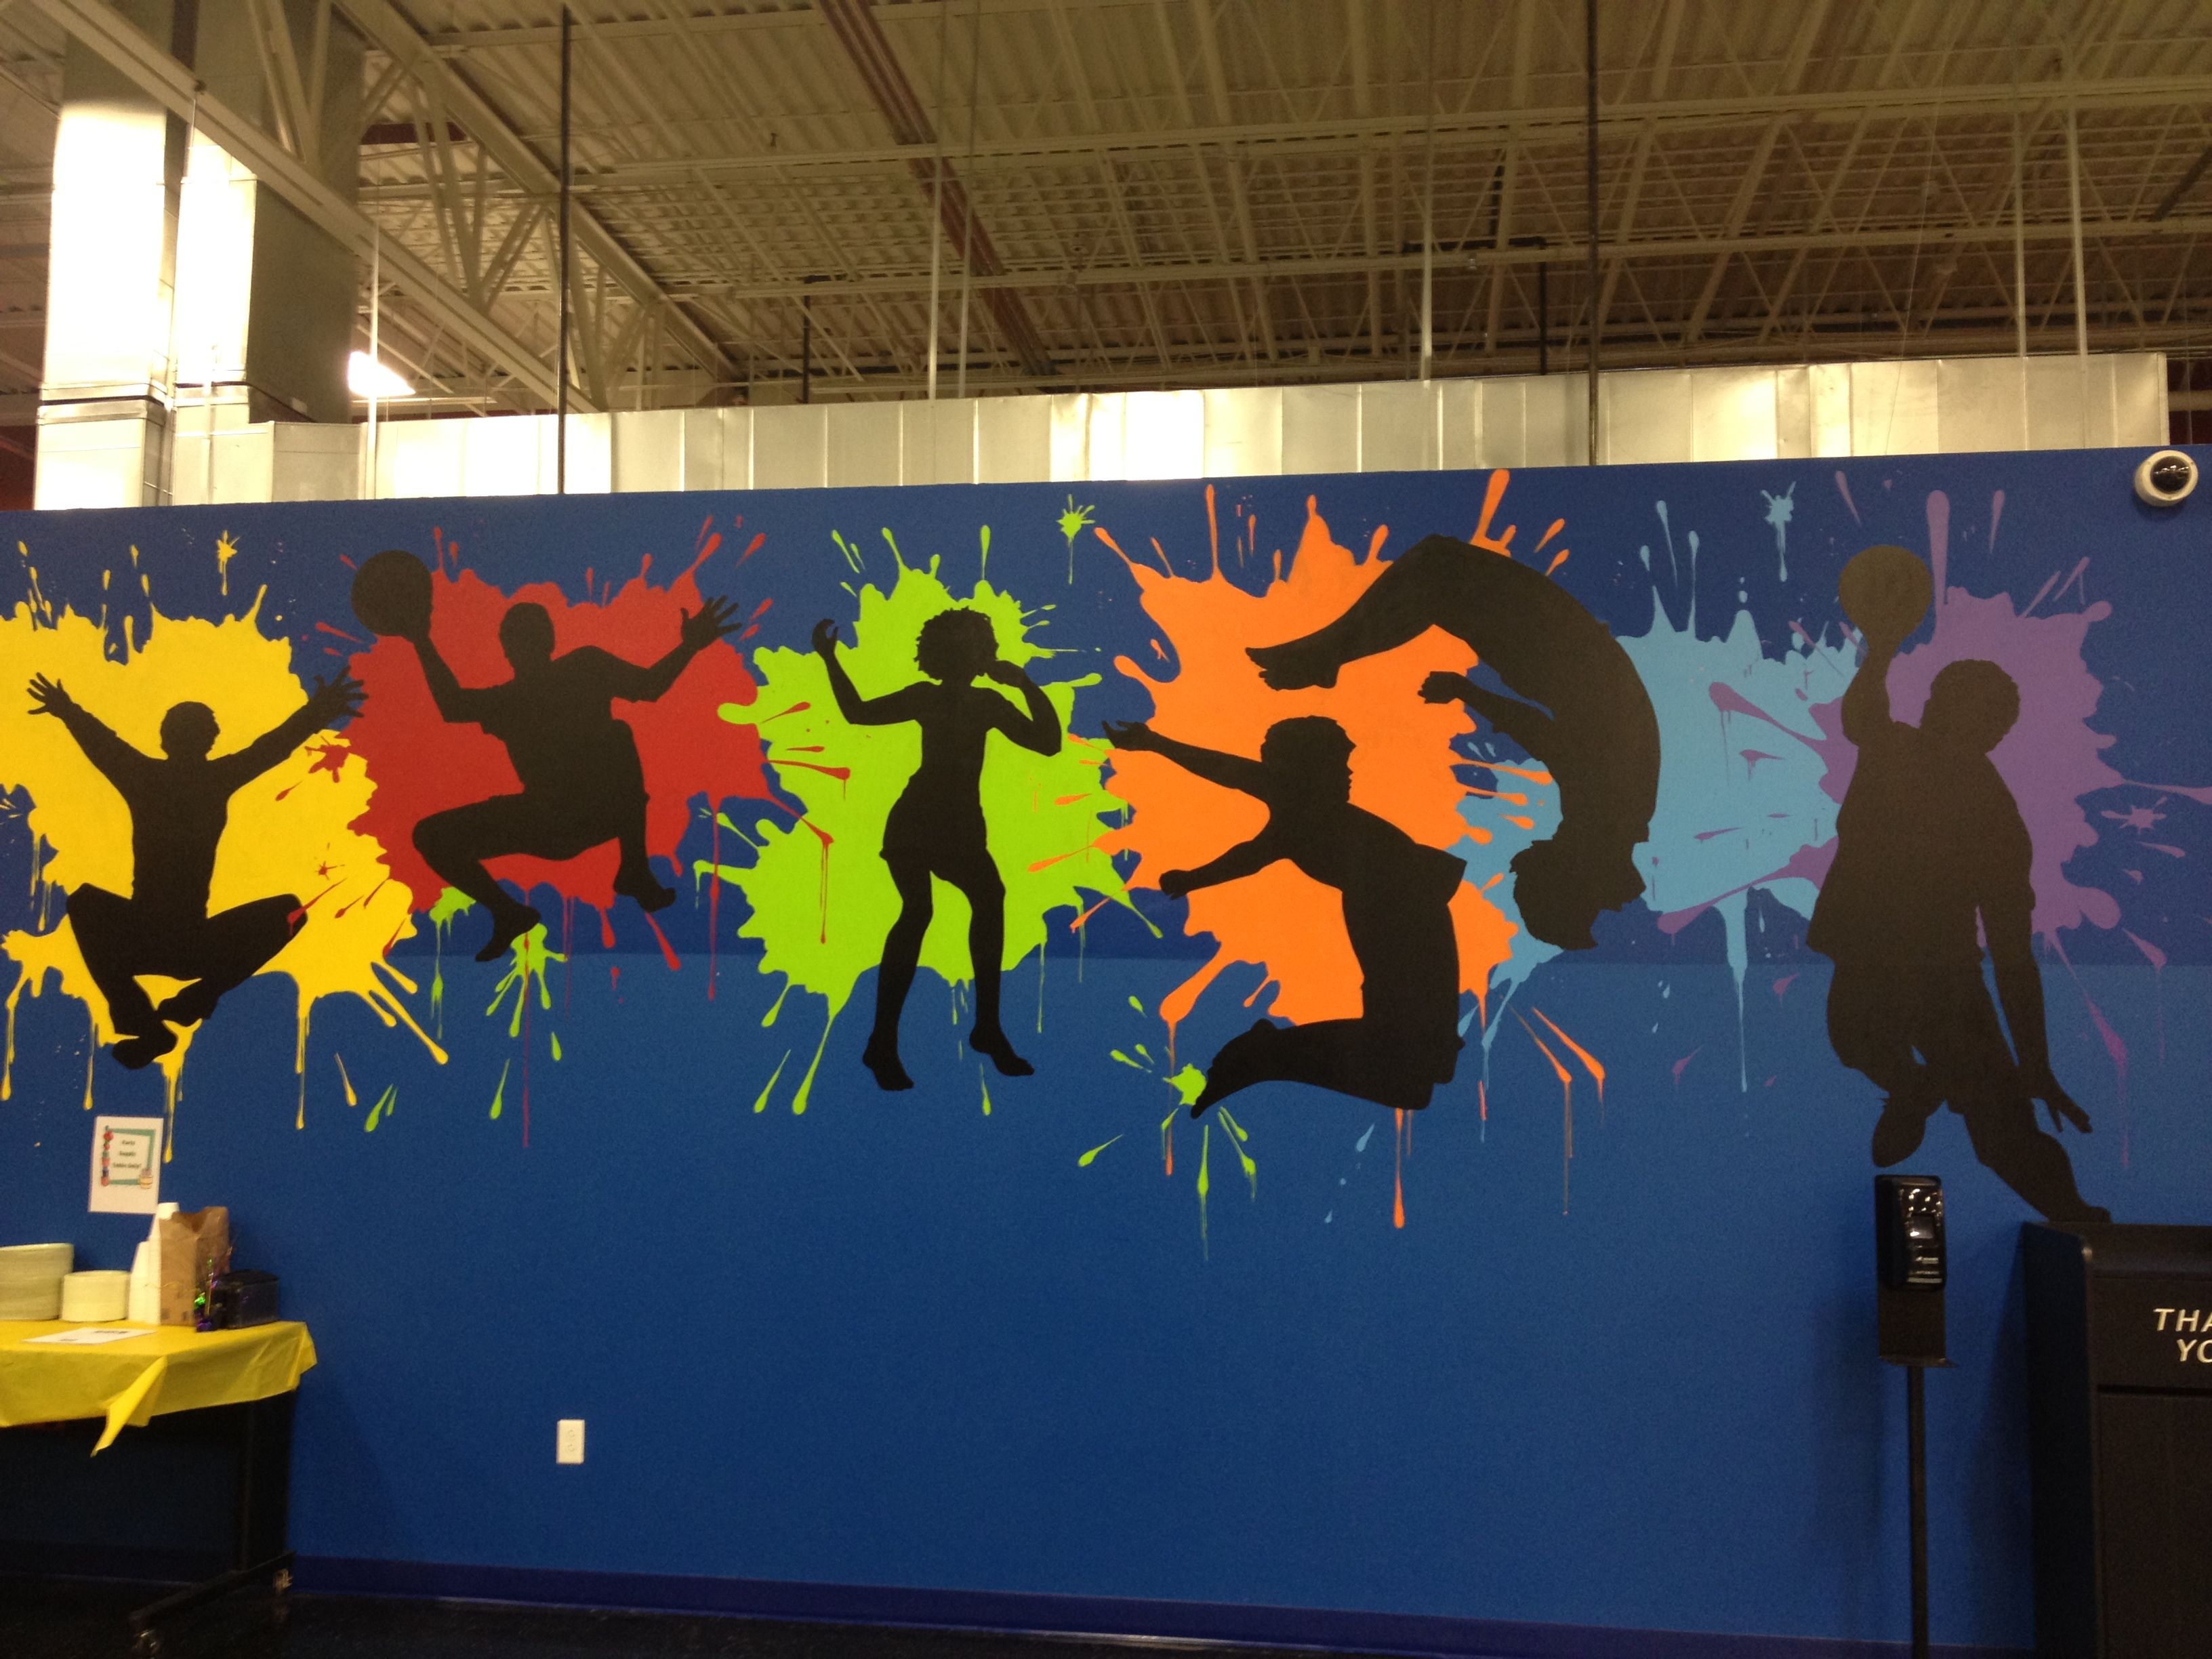 mural for the gym at school do on a removable board